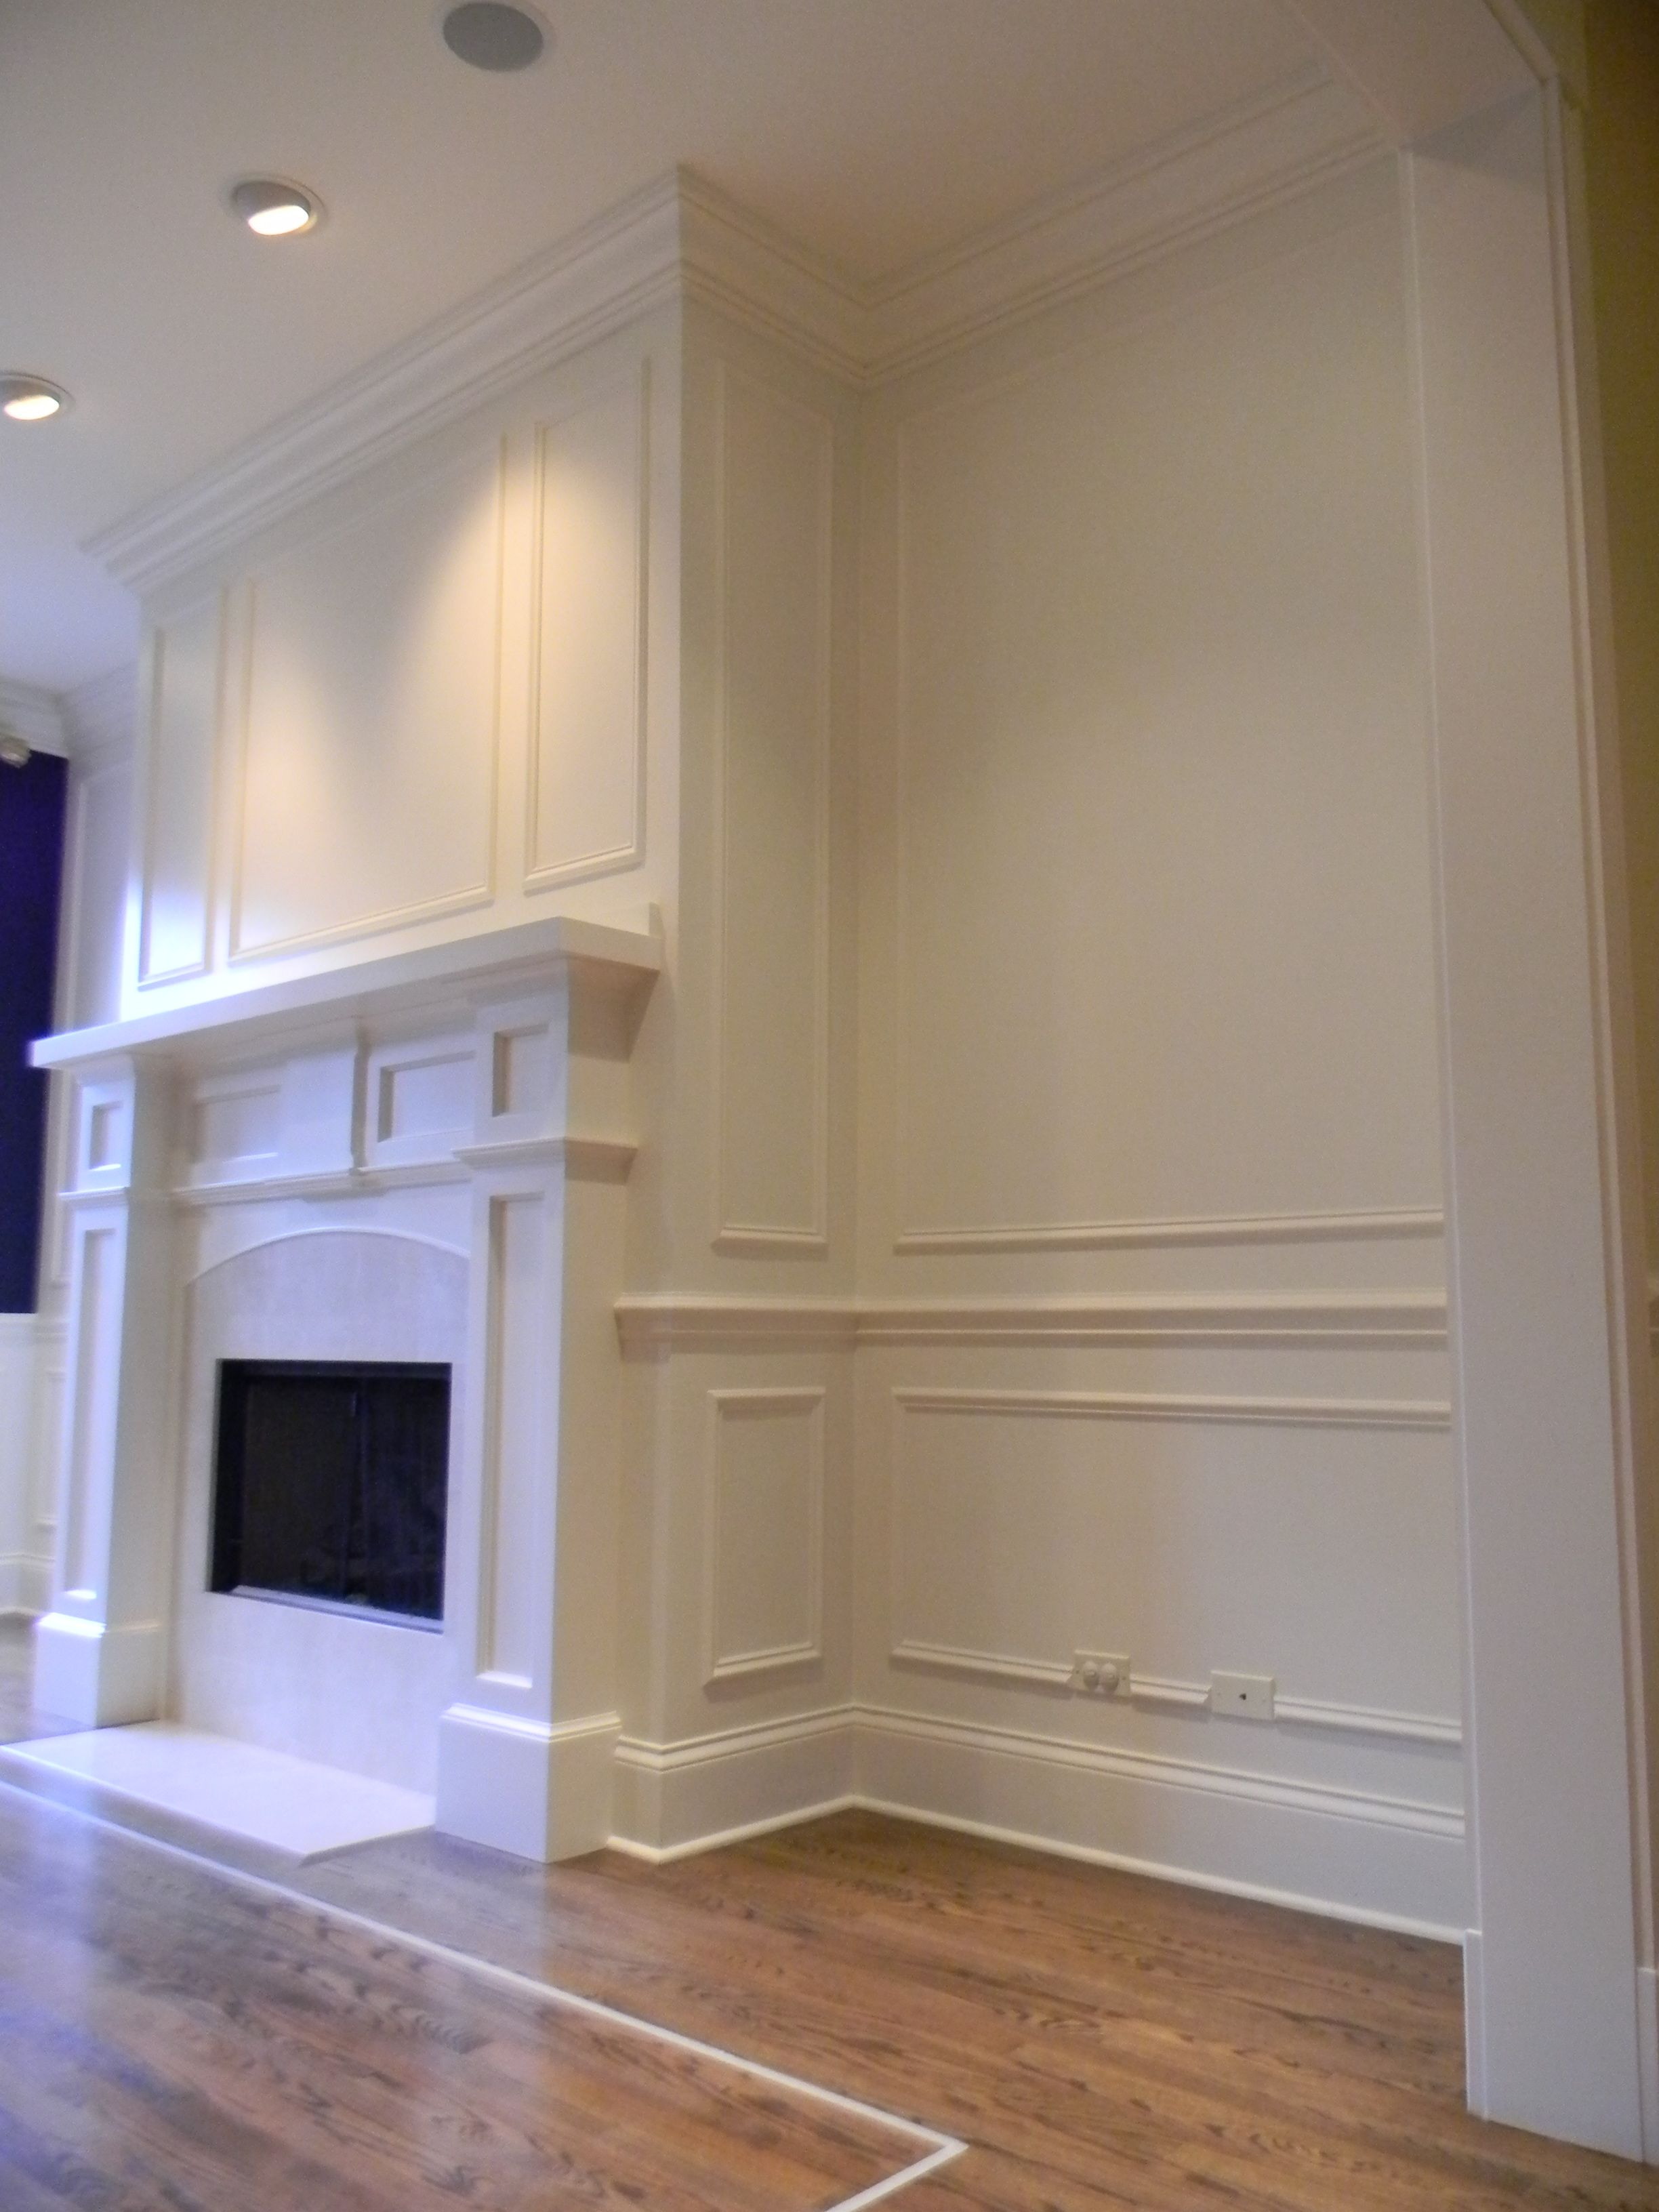 Wainscot solutions inc custom assembled wainscoting - Trim Overlay Wainscoting And Wall Frames Idea For Living Room Only In A